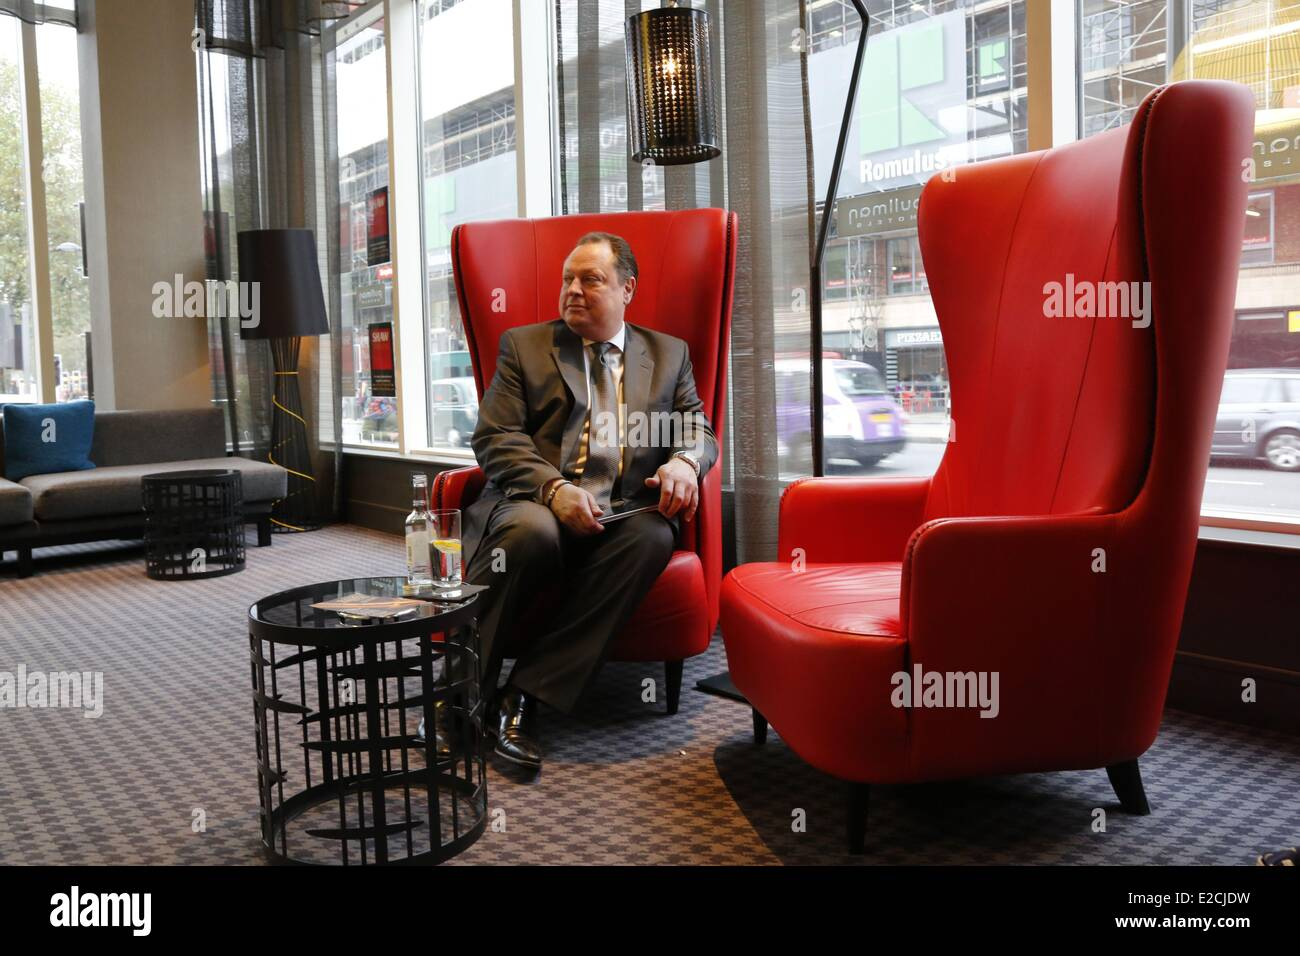 General Manager Hotel High Resolution Stock Photography and Images ...